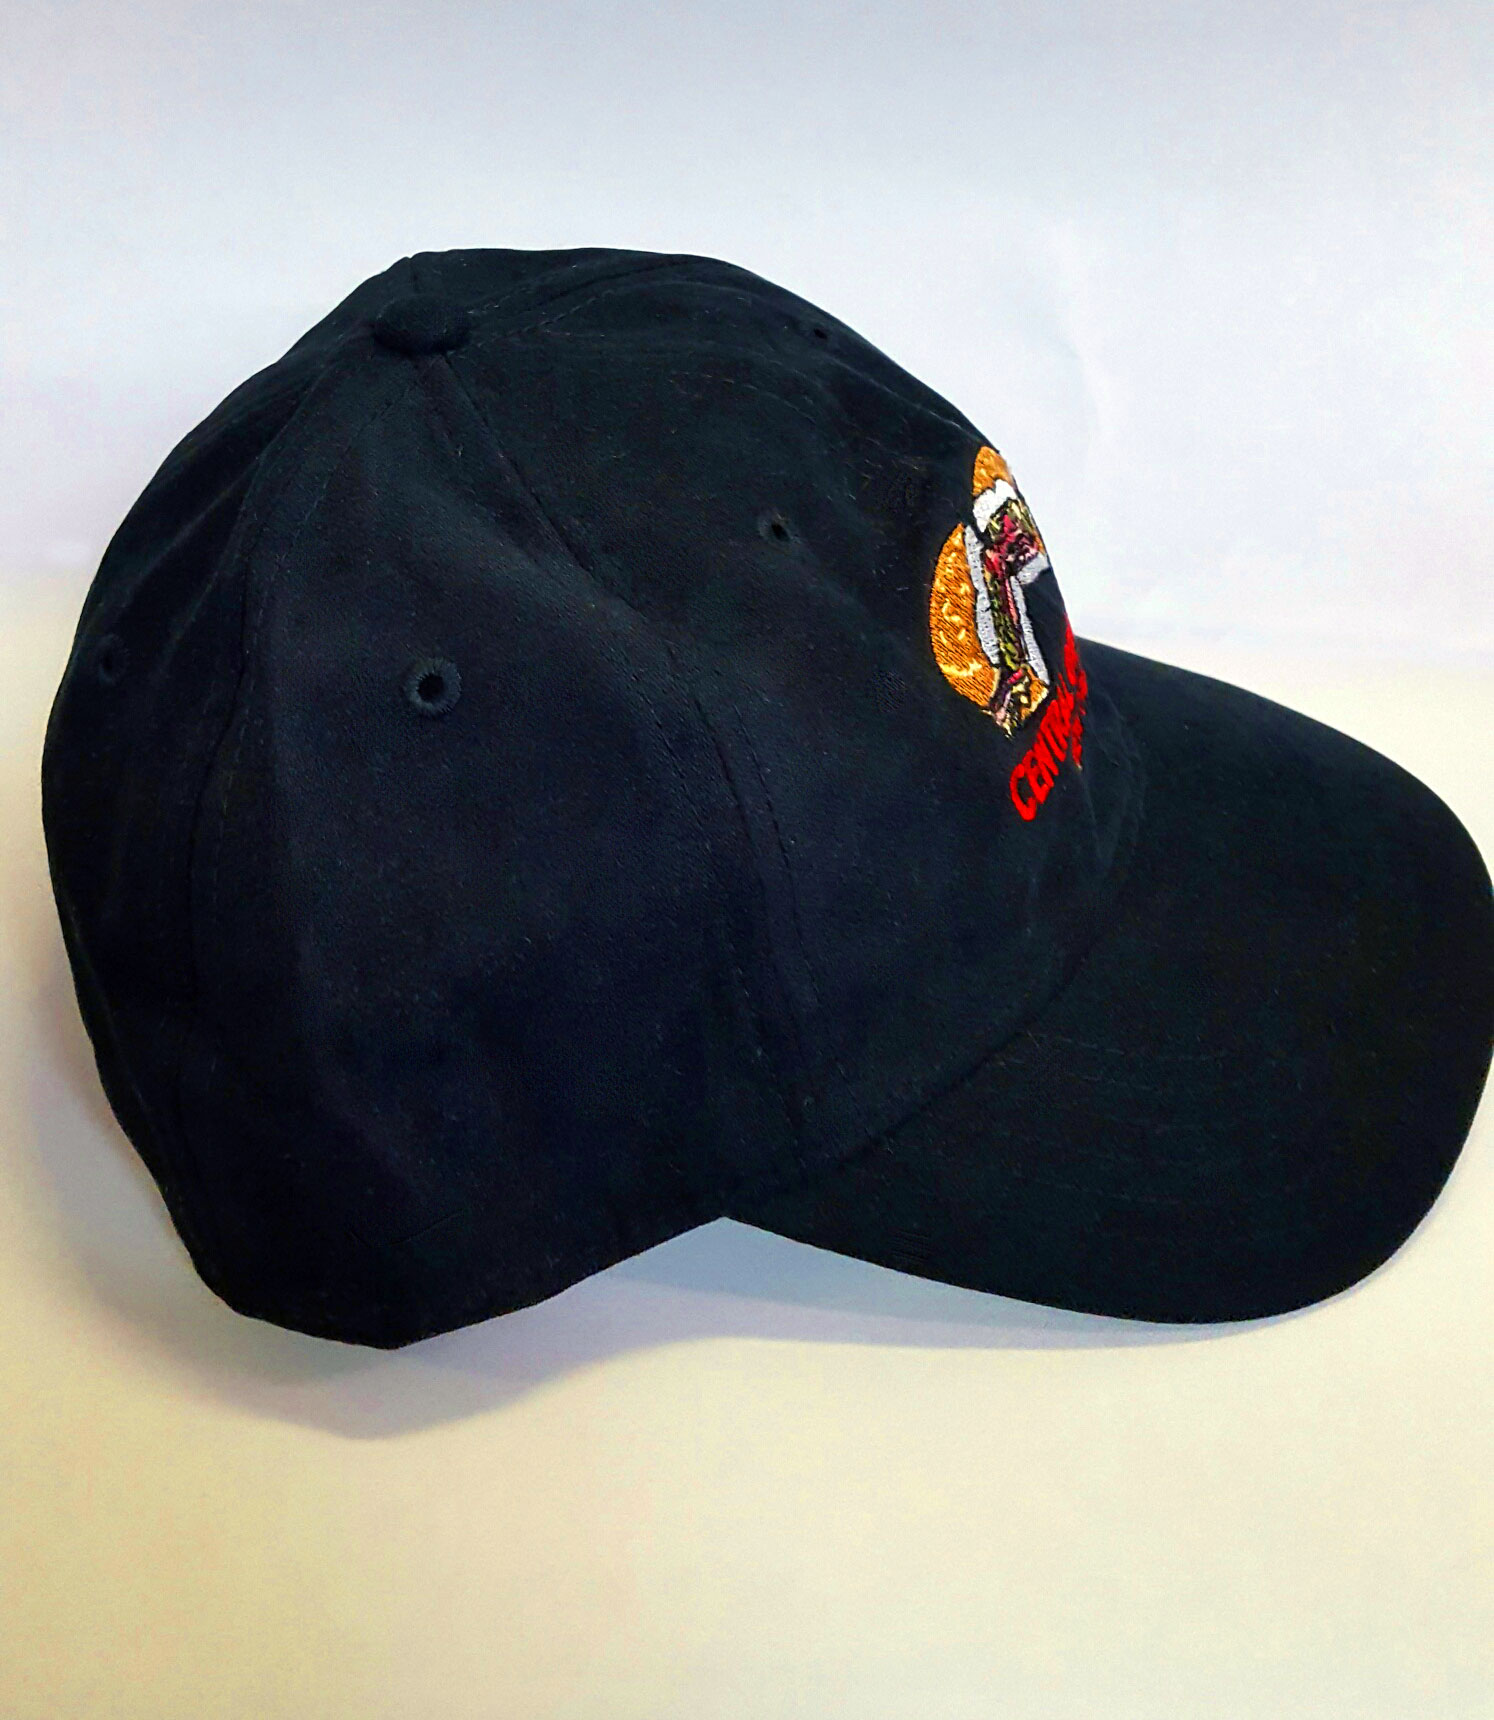 Central Grocery Co. New Orleans Large Baseball Cap